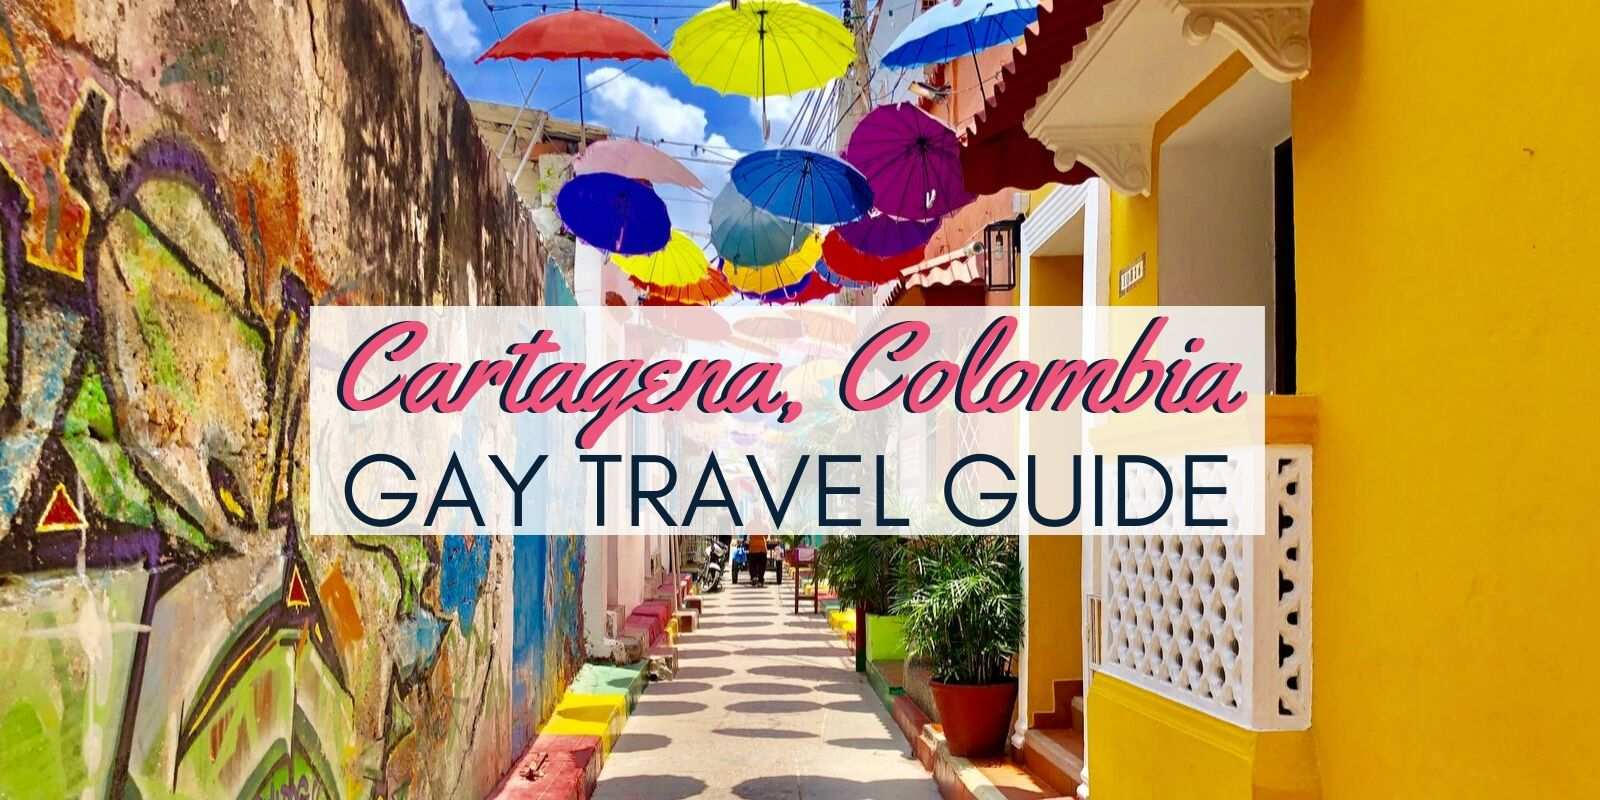 gay area in cartagena colombia